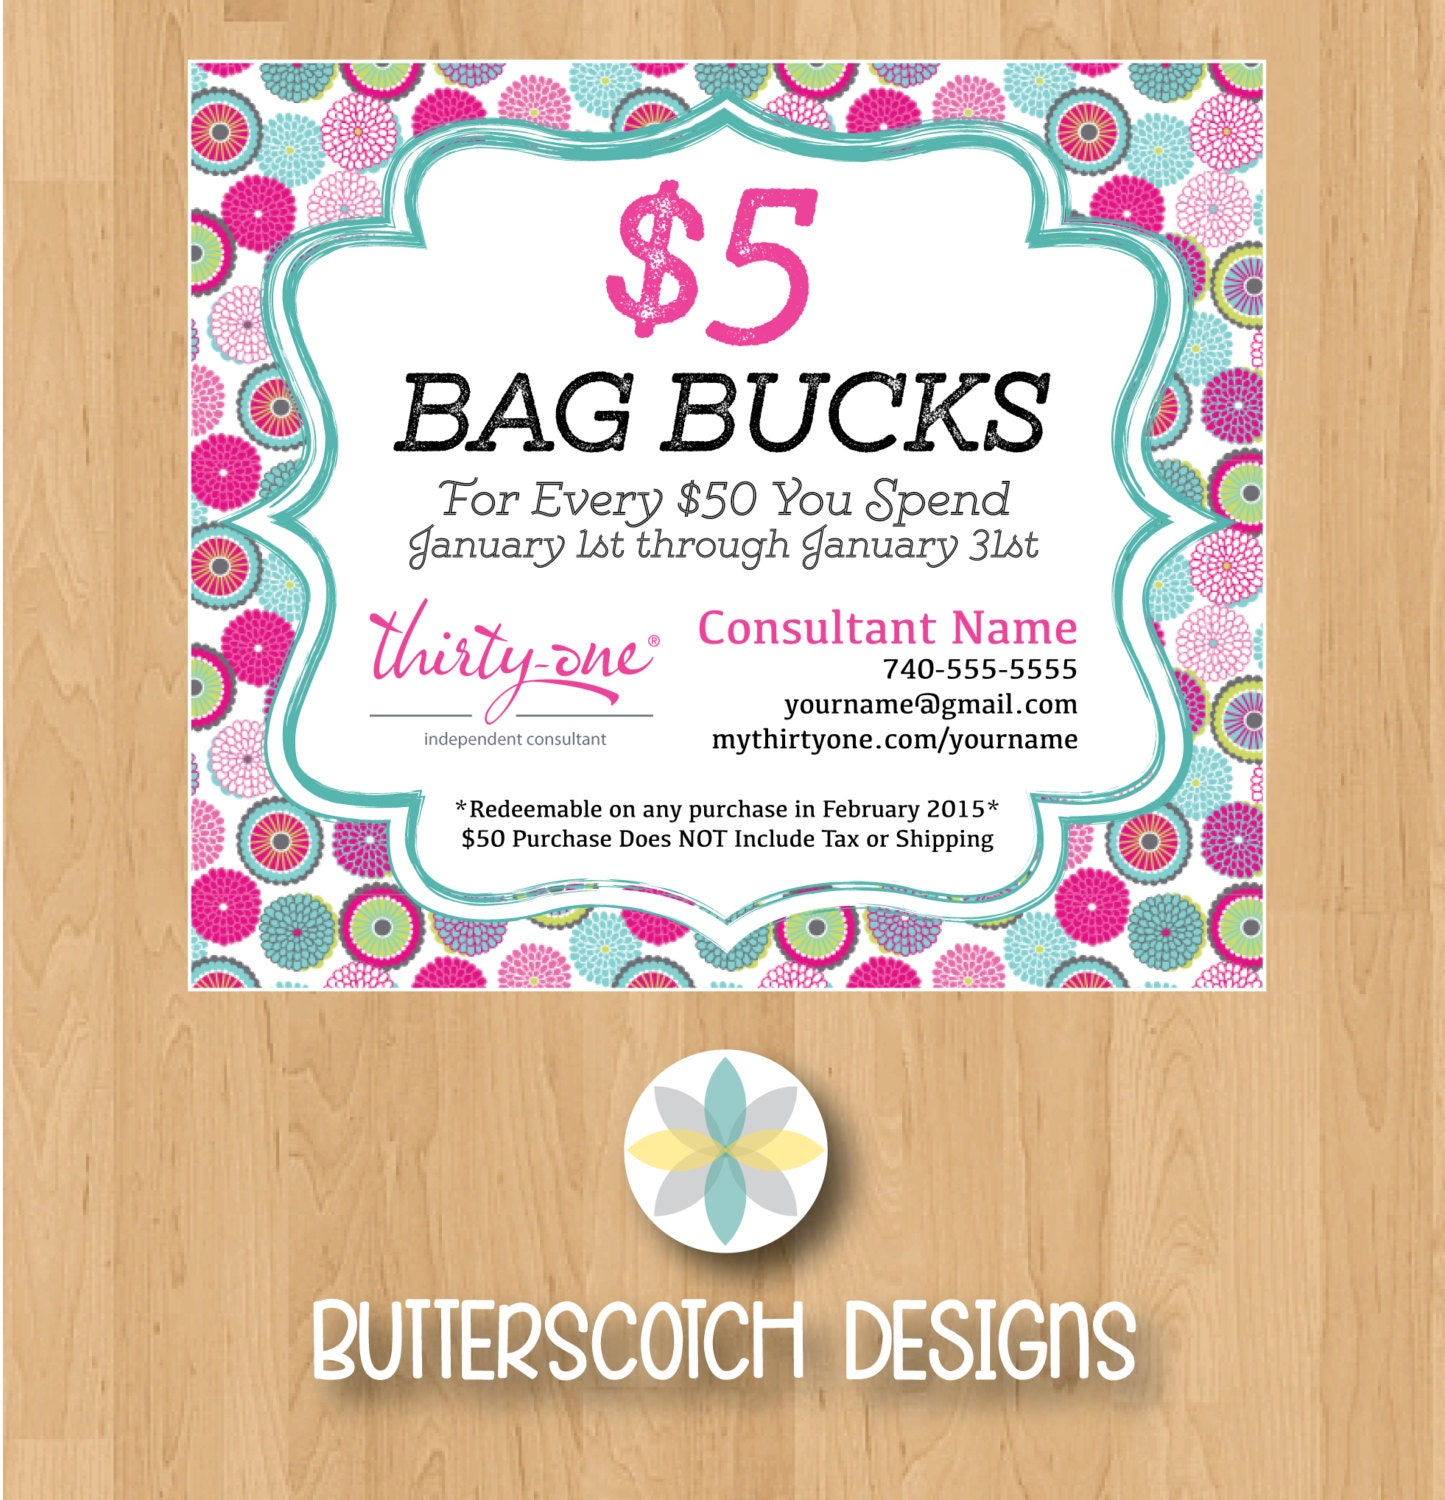 Thirty-One Customer Bag Bucks Bubble Bloom Mini Postcards